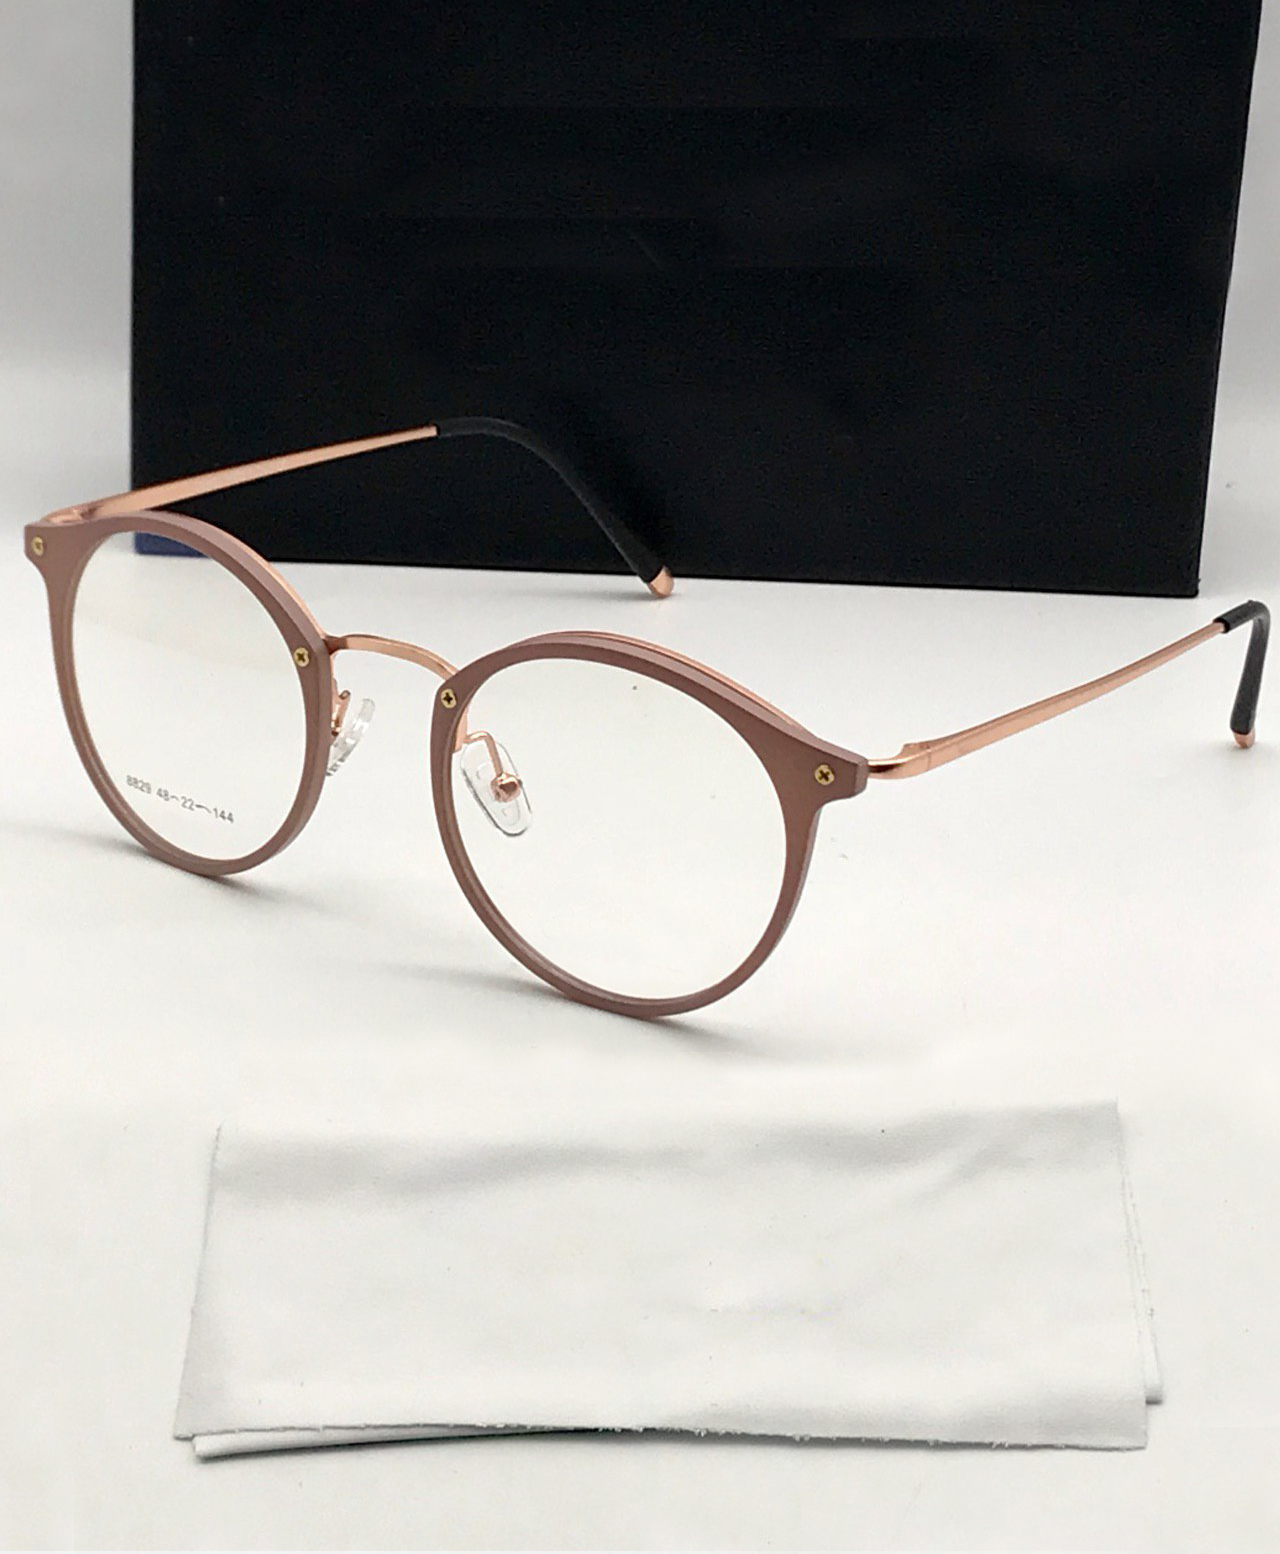 Lunette de vue CL Fashion - Saumon